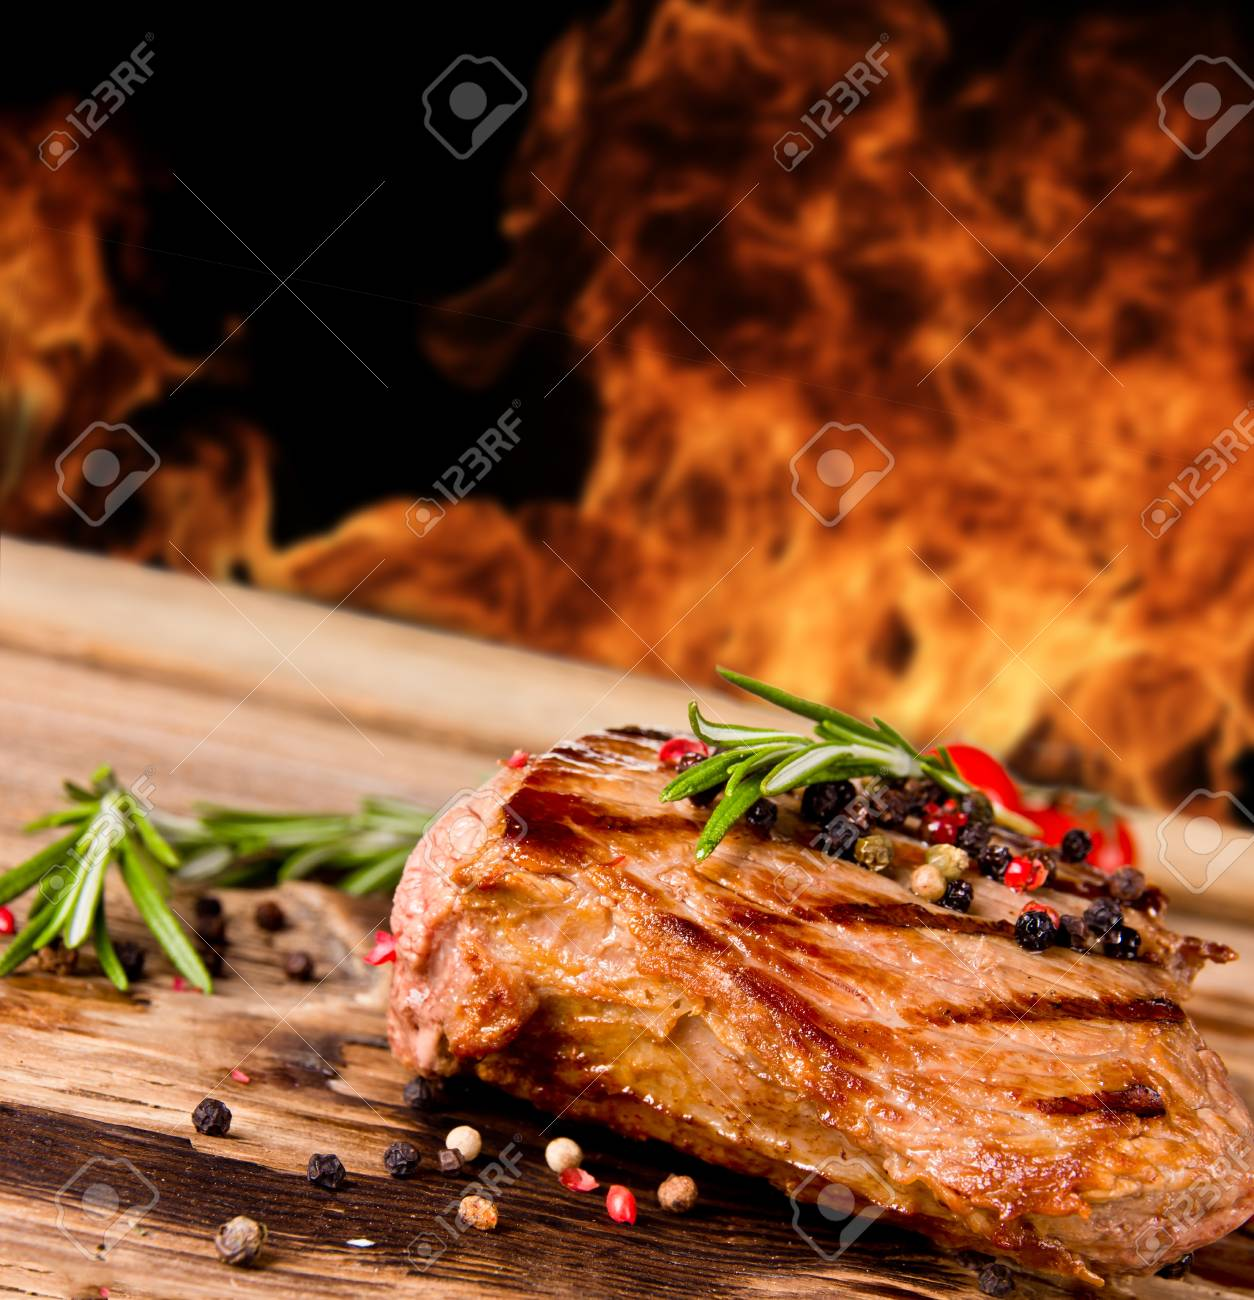 Grilled beef steak with flames on background Stock Photo - 14389898